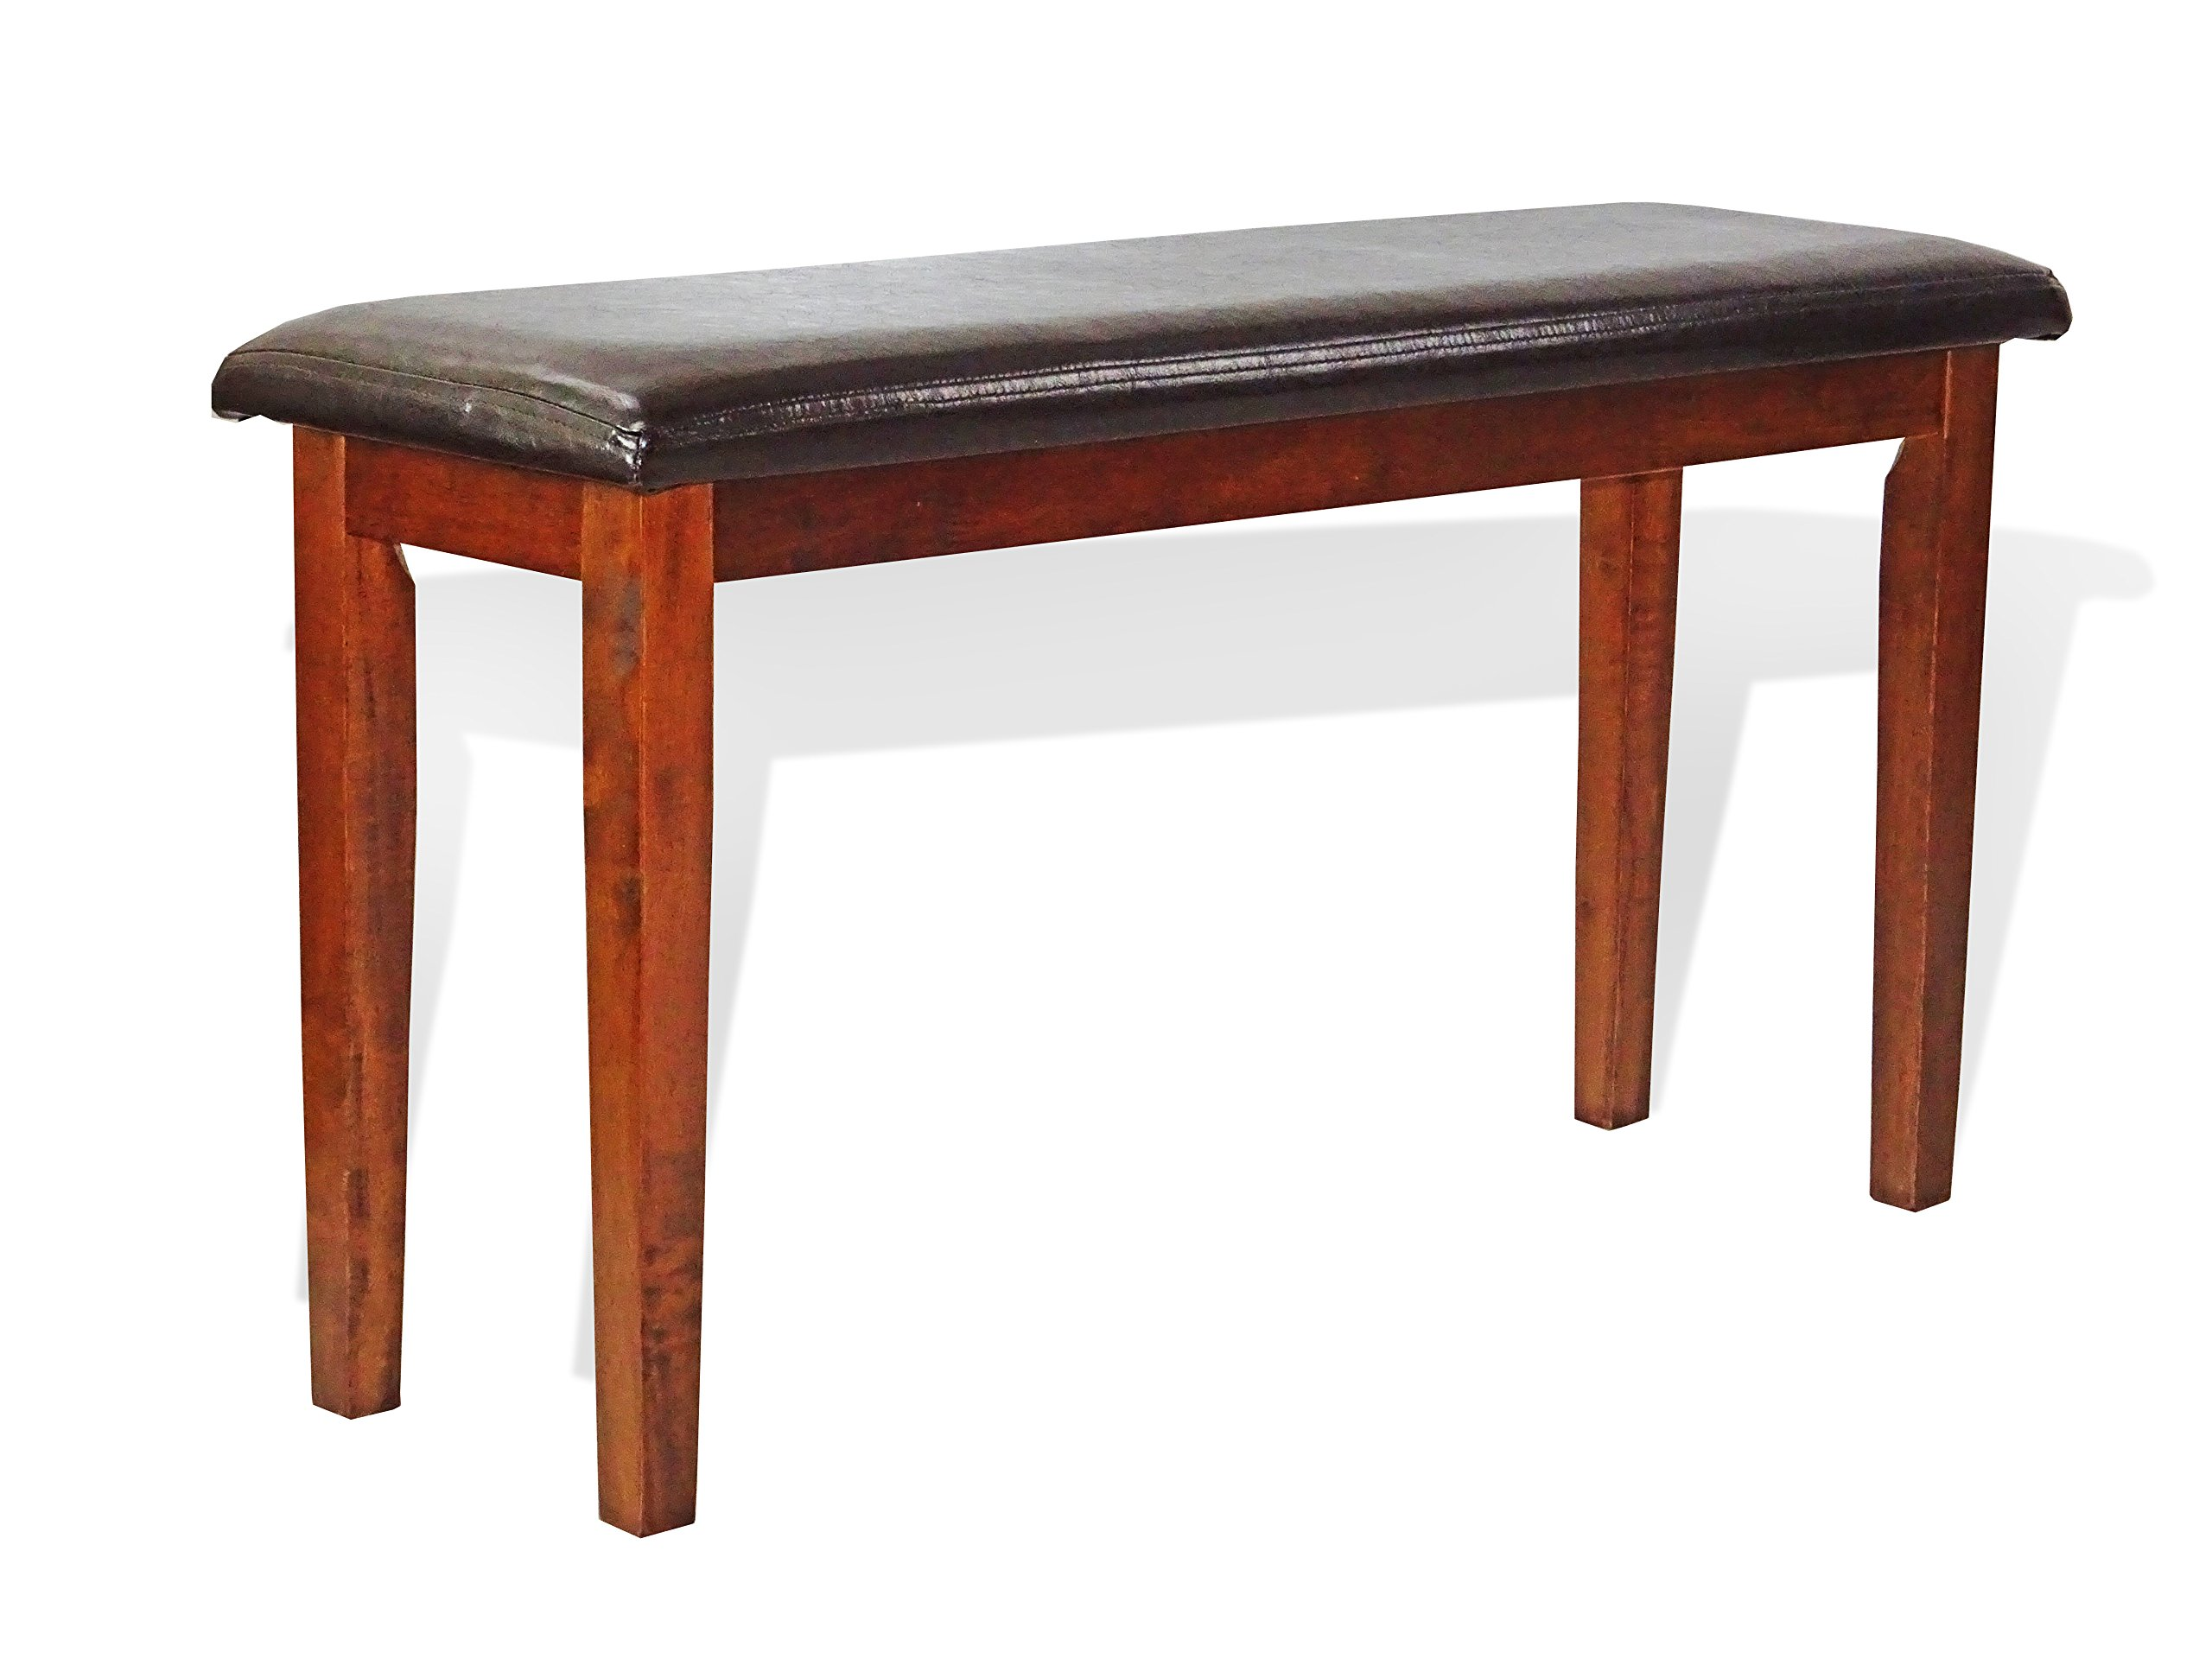 SunBear Furniture Dining Kitchen Solid Wooden Stained Bench Padded Seat Dark Walnut Finish